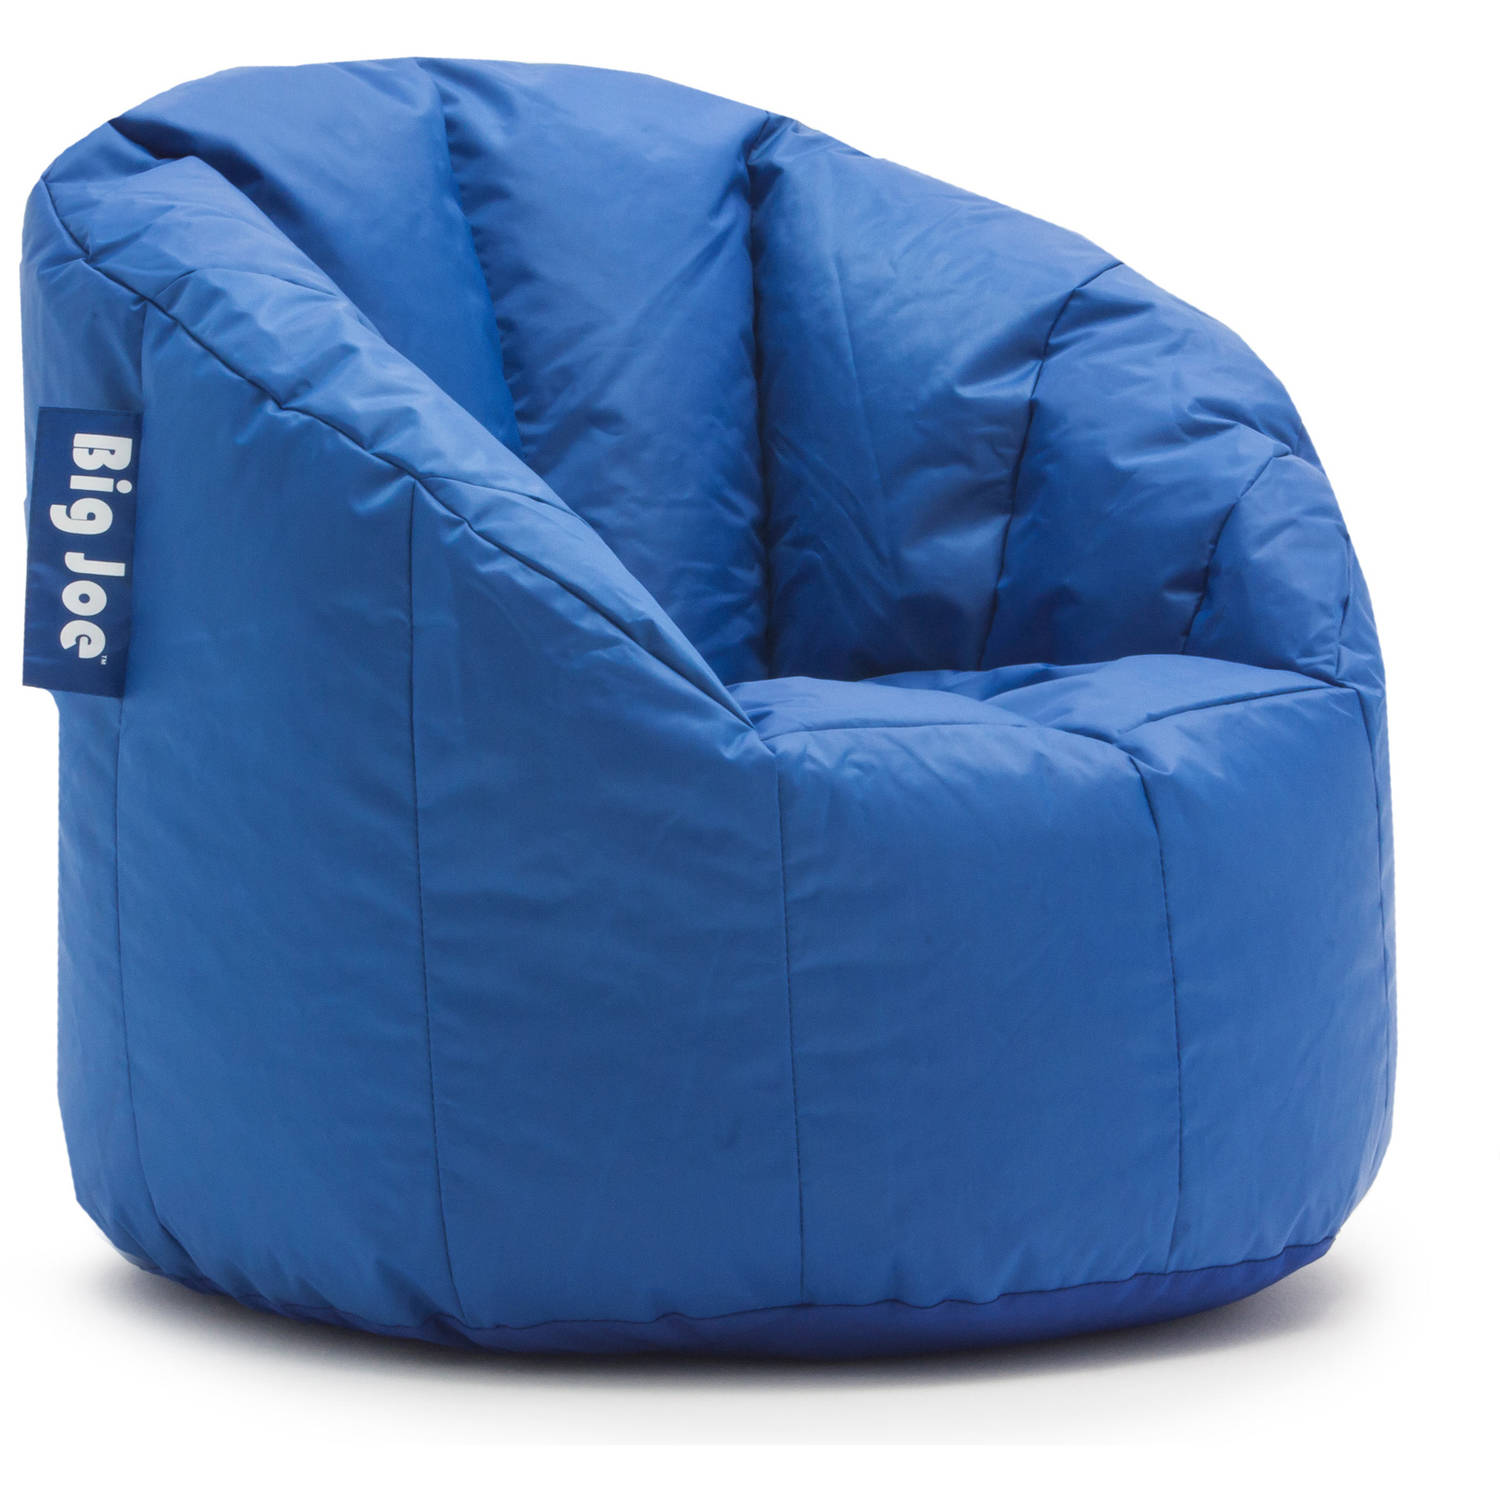 Bean bag chairs price - Bean Bag Chairs Price 3